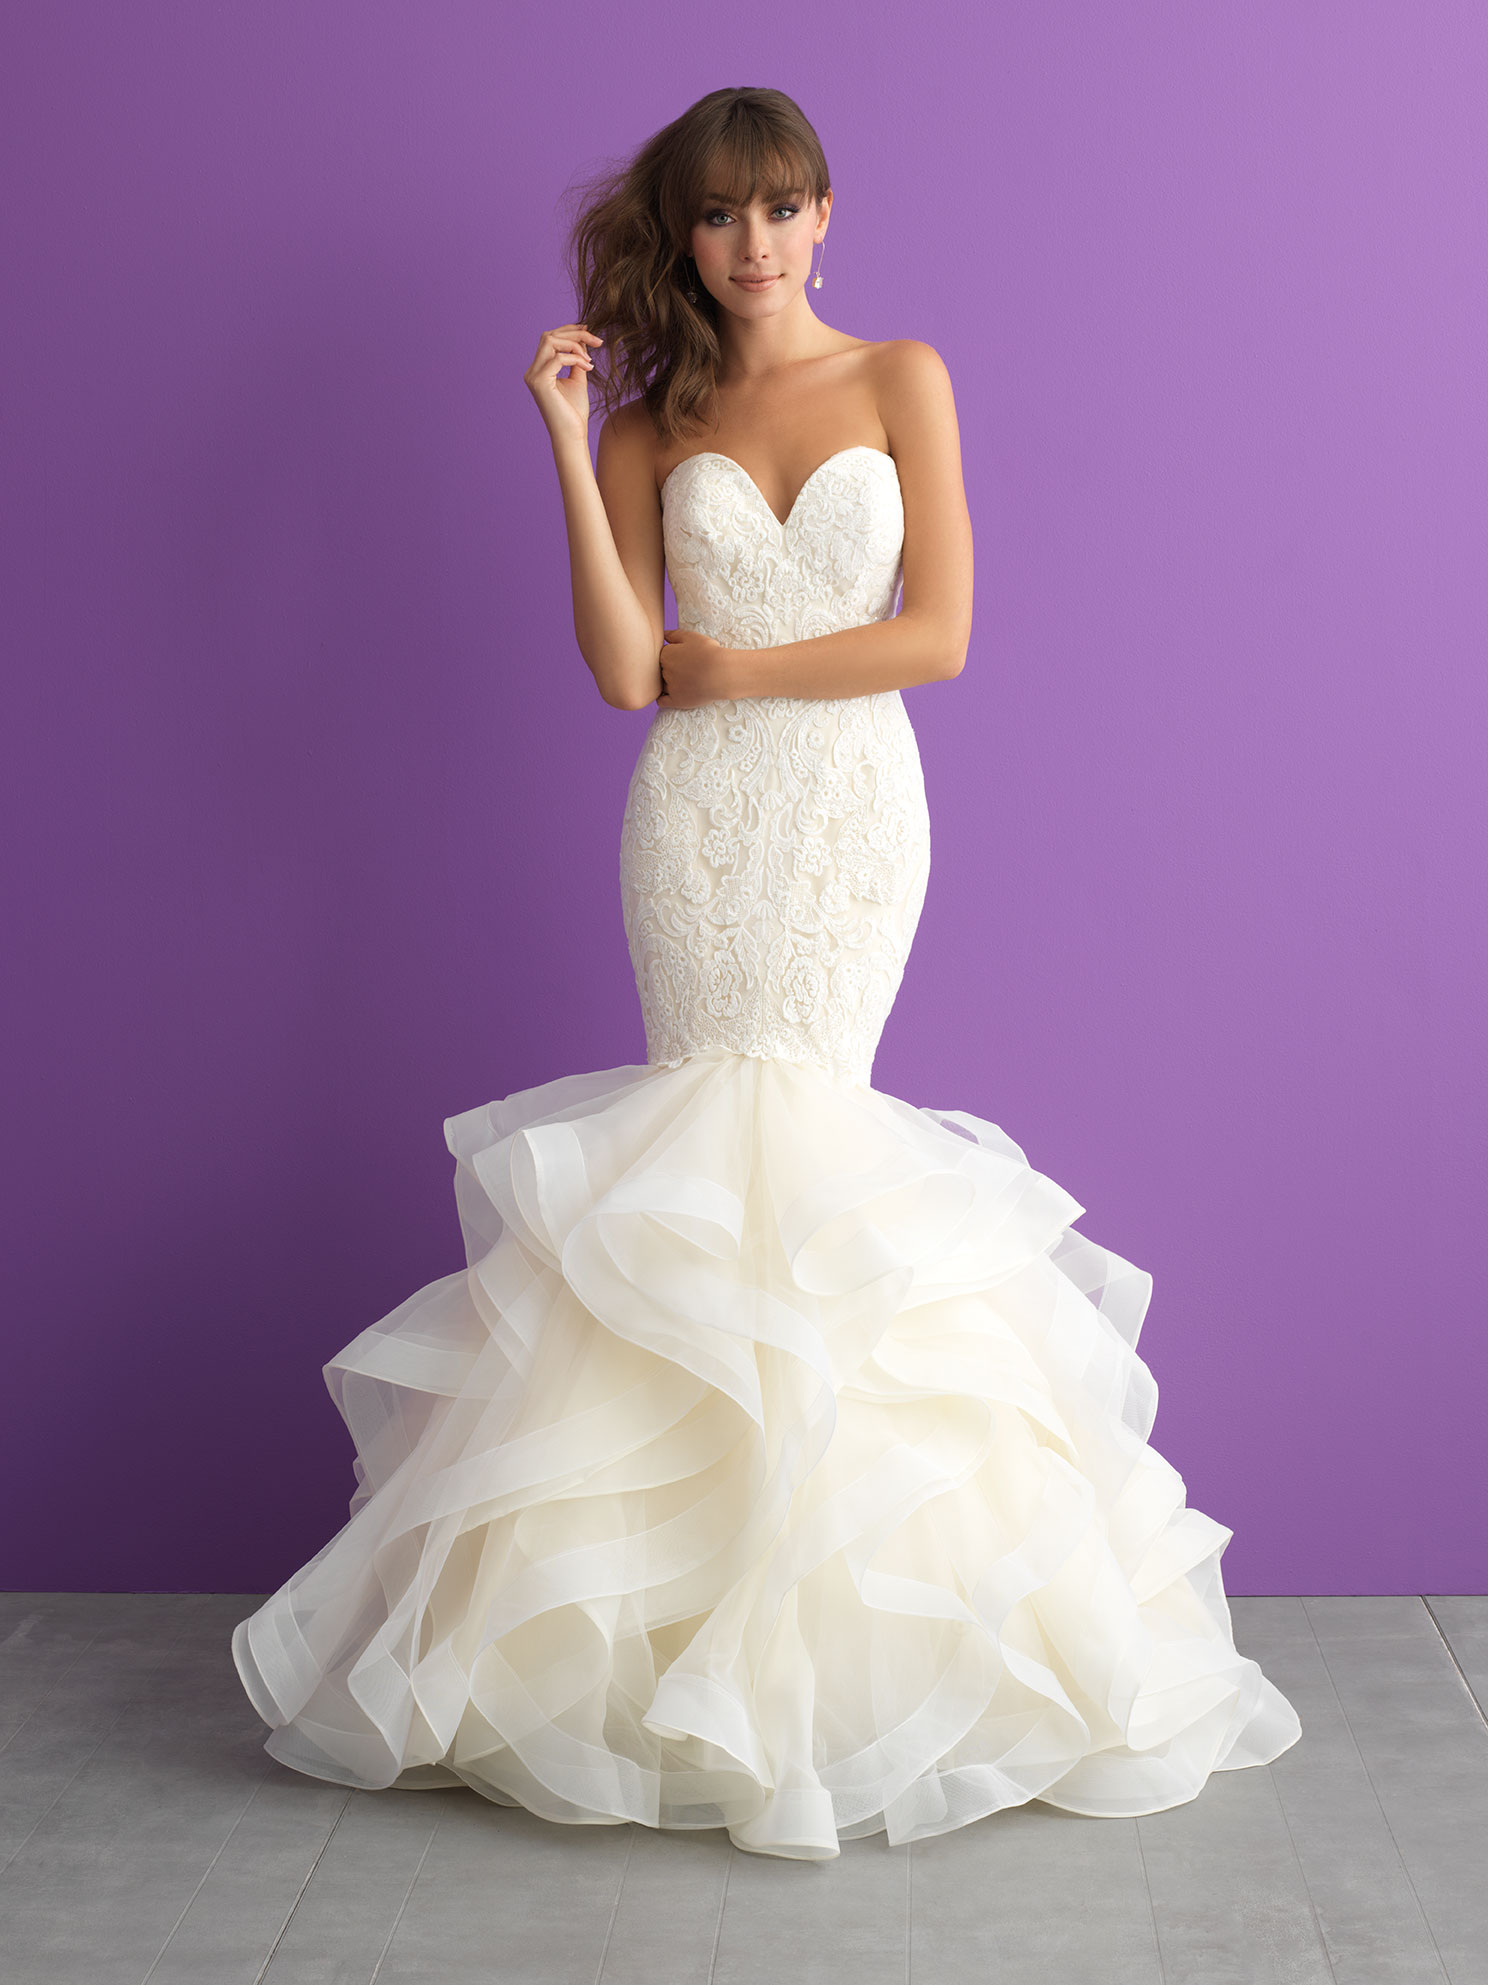 3ea519a8c57 Allure Couture Wedding Dress Prices - Gomes Weine AG